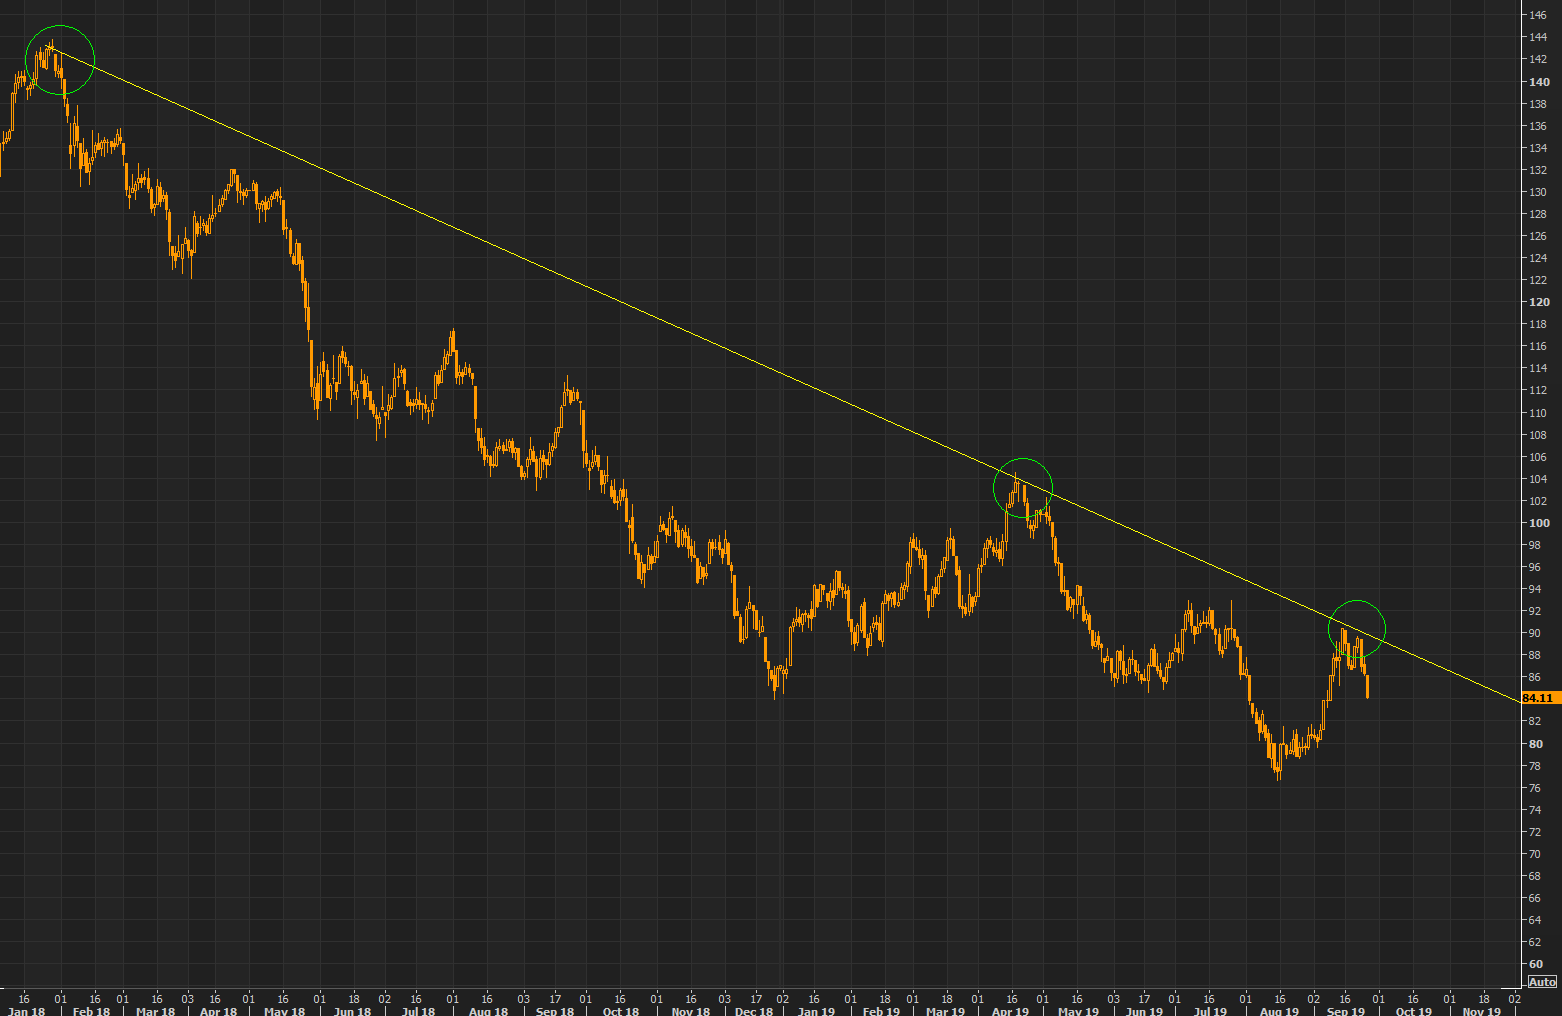 Euro banks -  another perfect reversal on the longer term down trend line